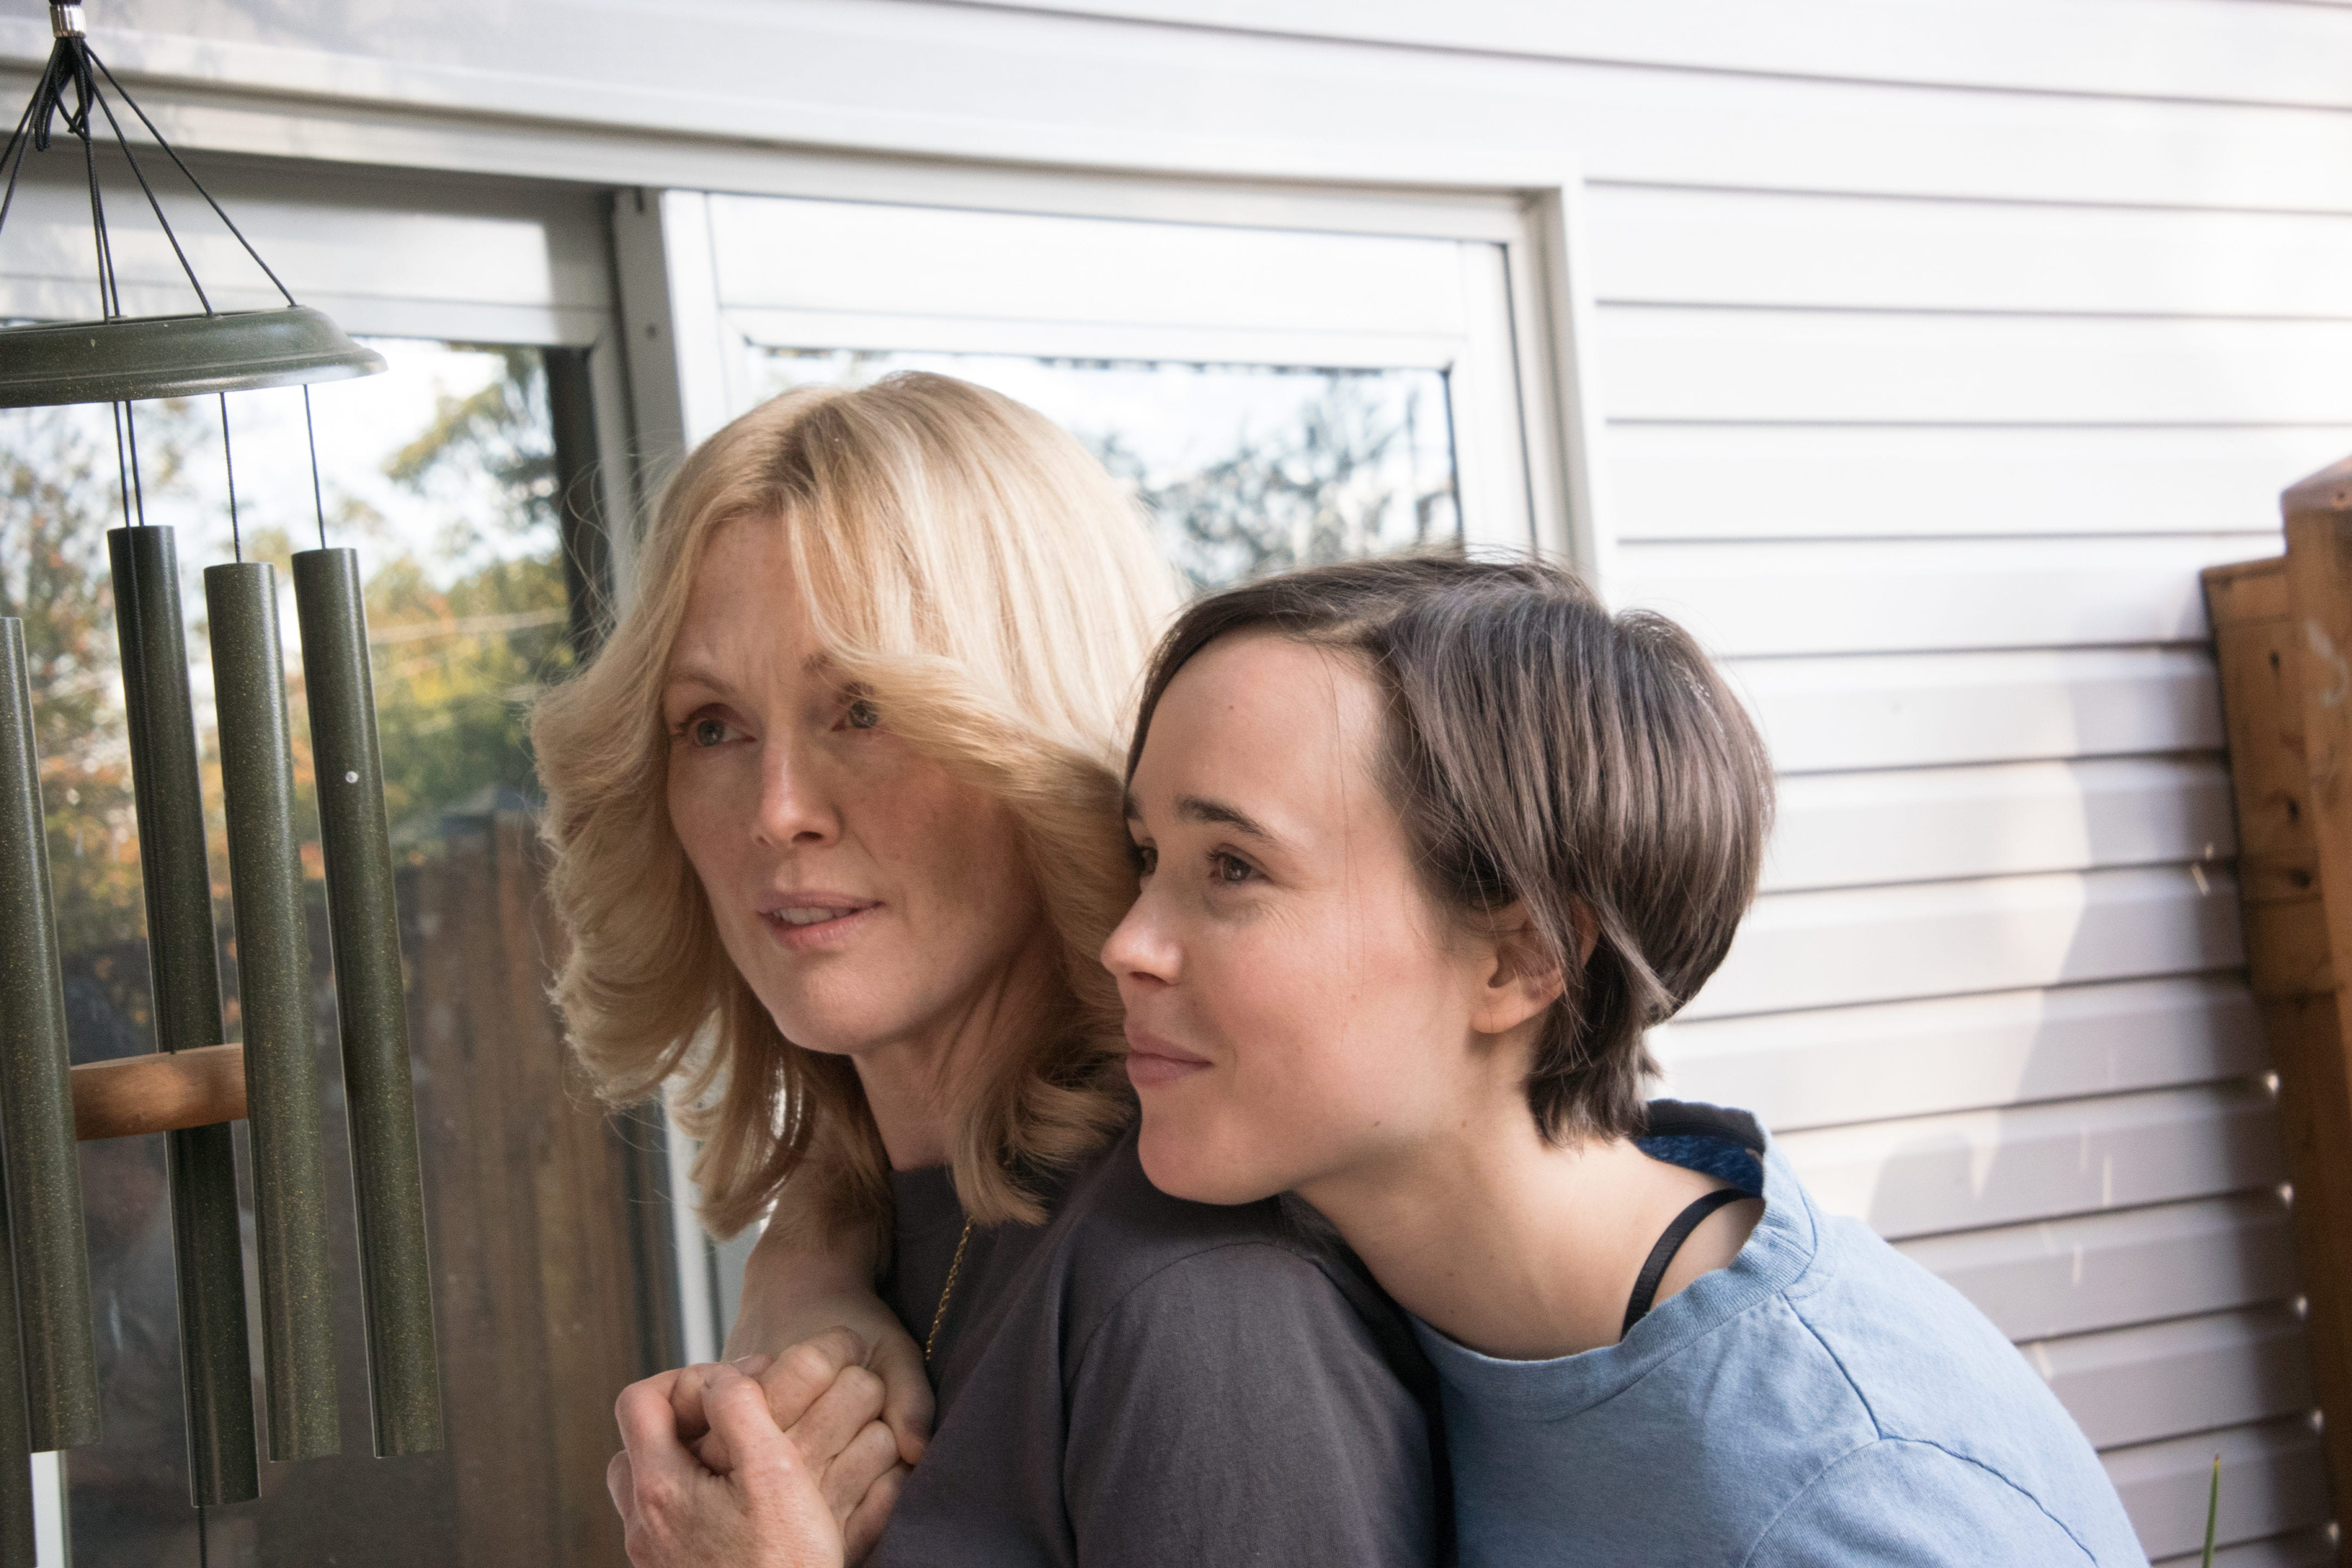 WATCH: First clip from 'Freeheld'